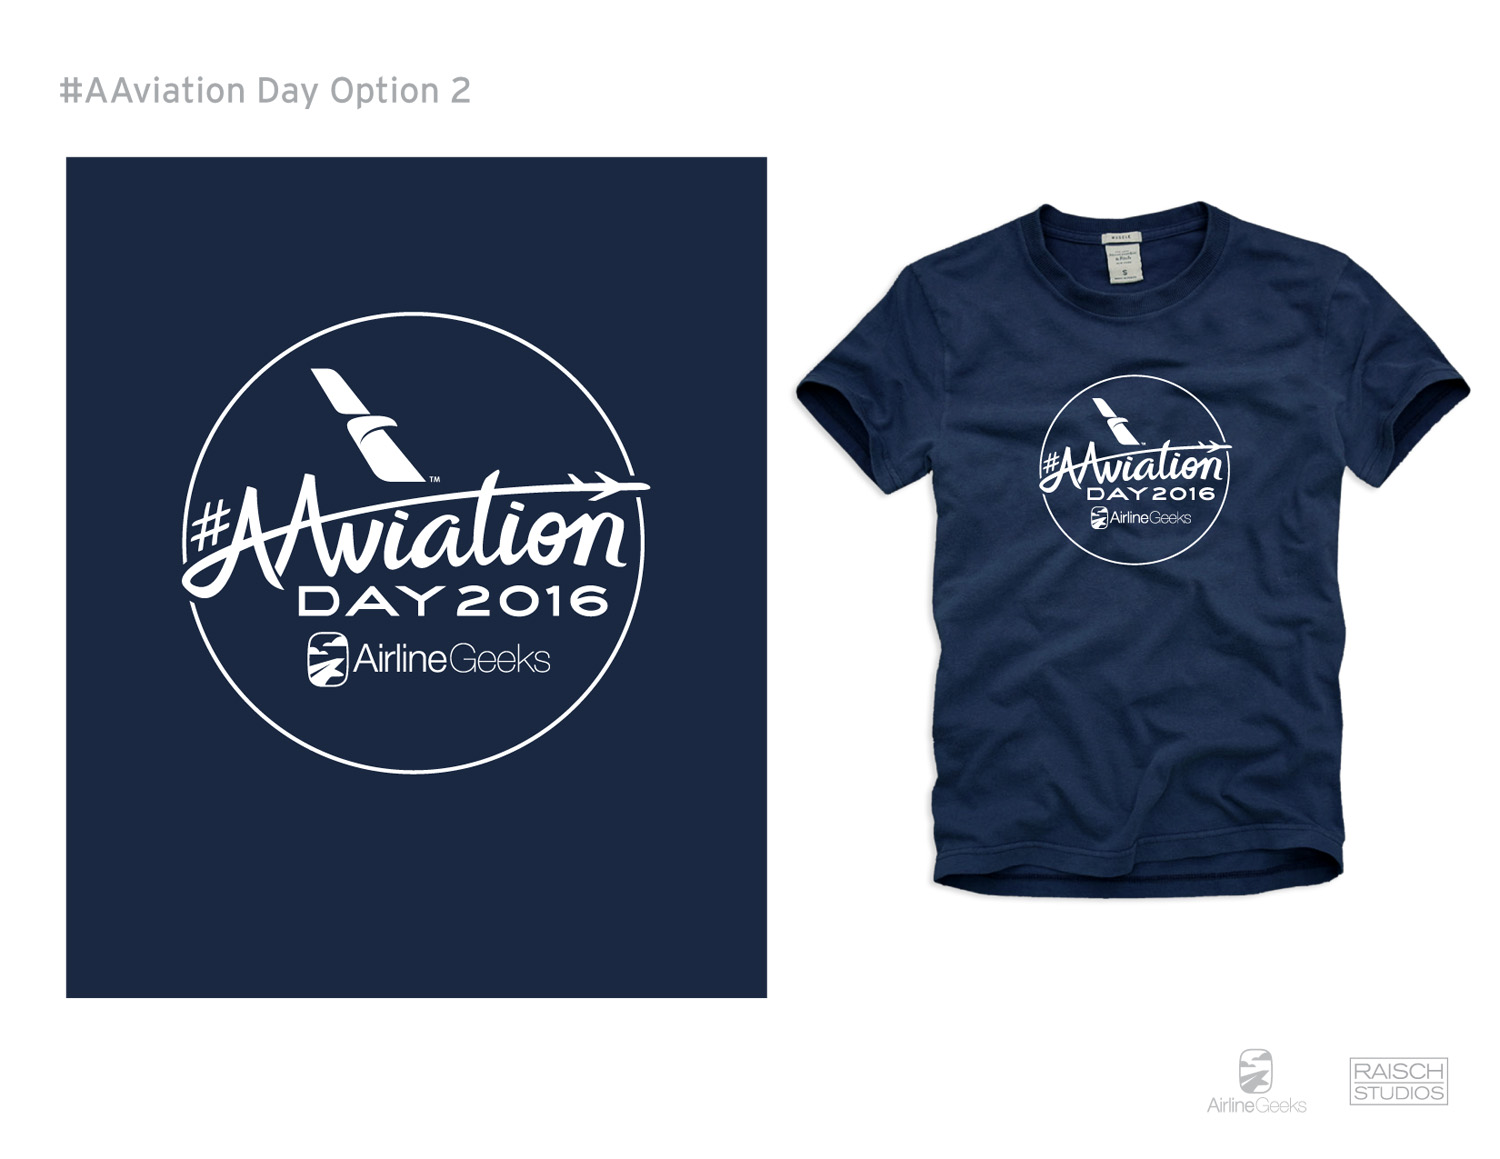 AAviation_Day_Shirts-June28-2A.jpg